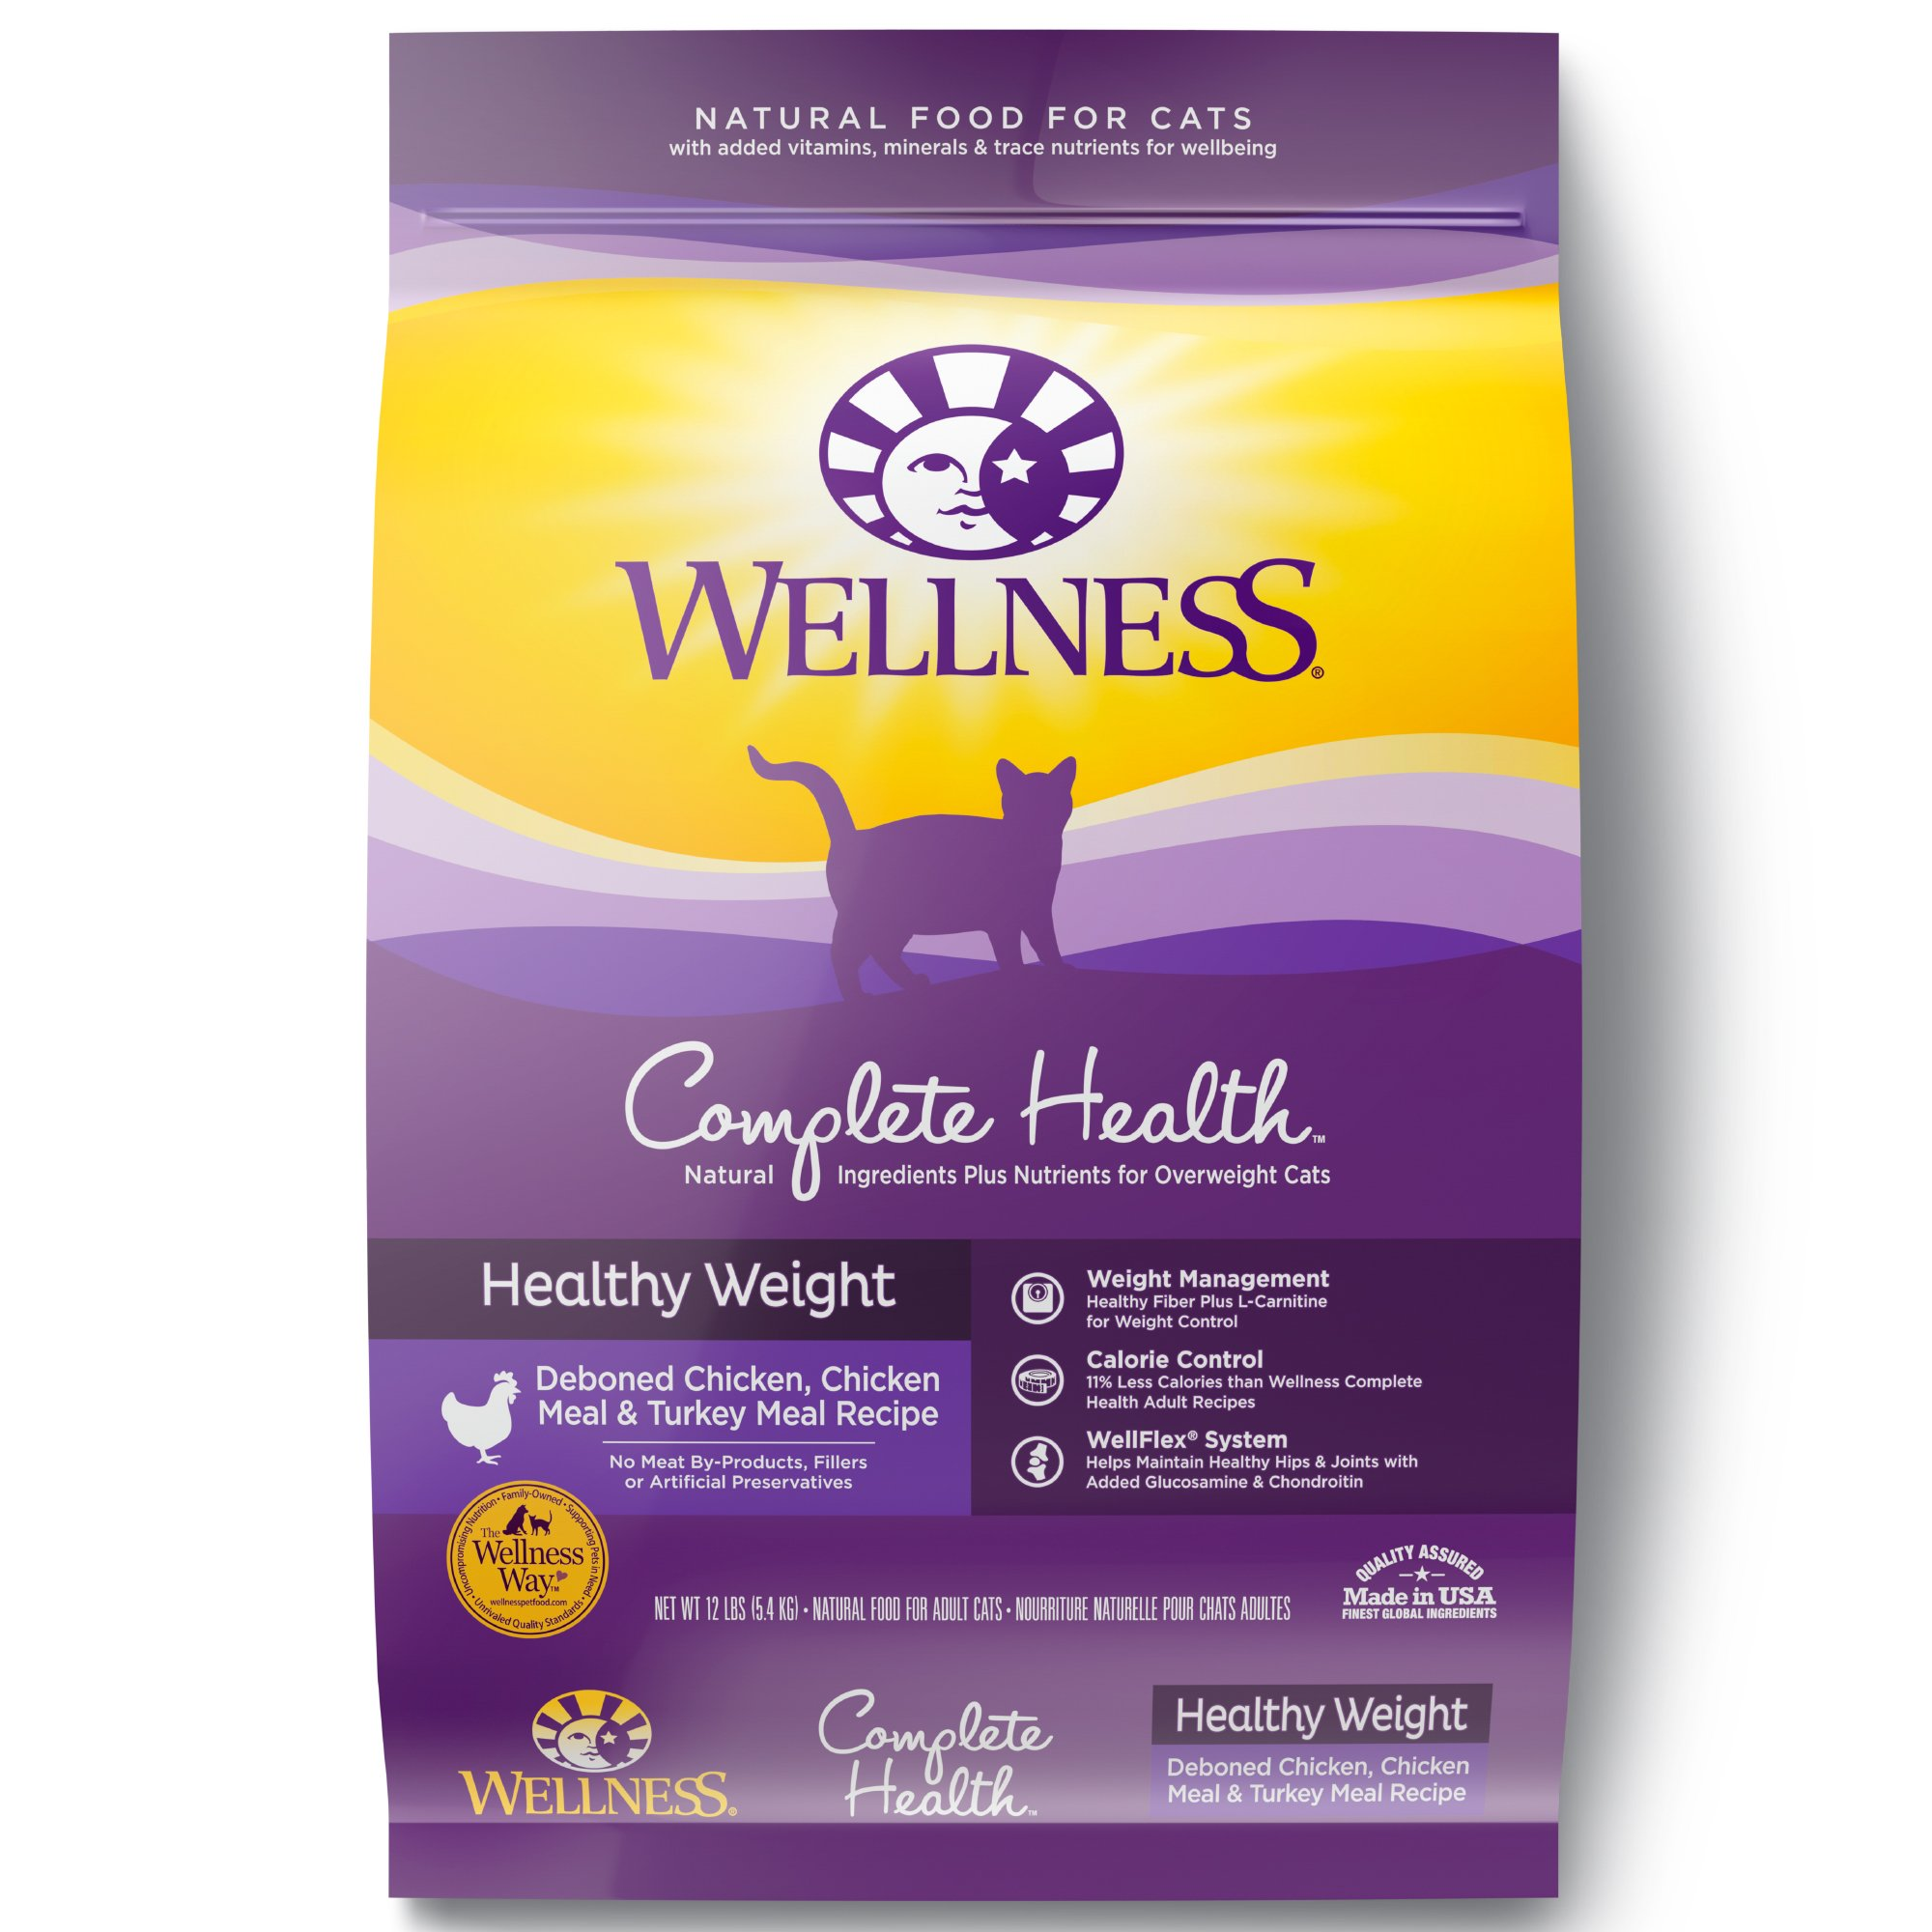 Wellness Natural Pet Food Complete Health Natural Dry Cat Food, Healthy Weight Chicken & Turkey Recipe, 12-Pound Bag by Wellness Natural Pet Food